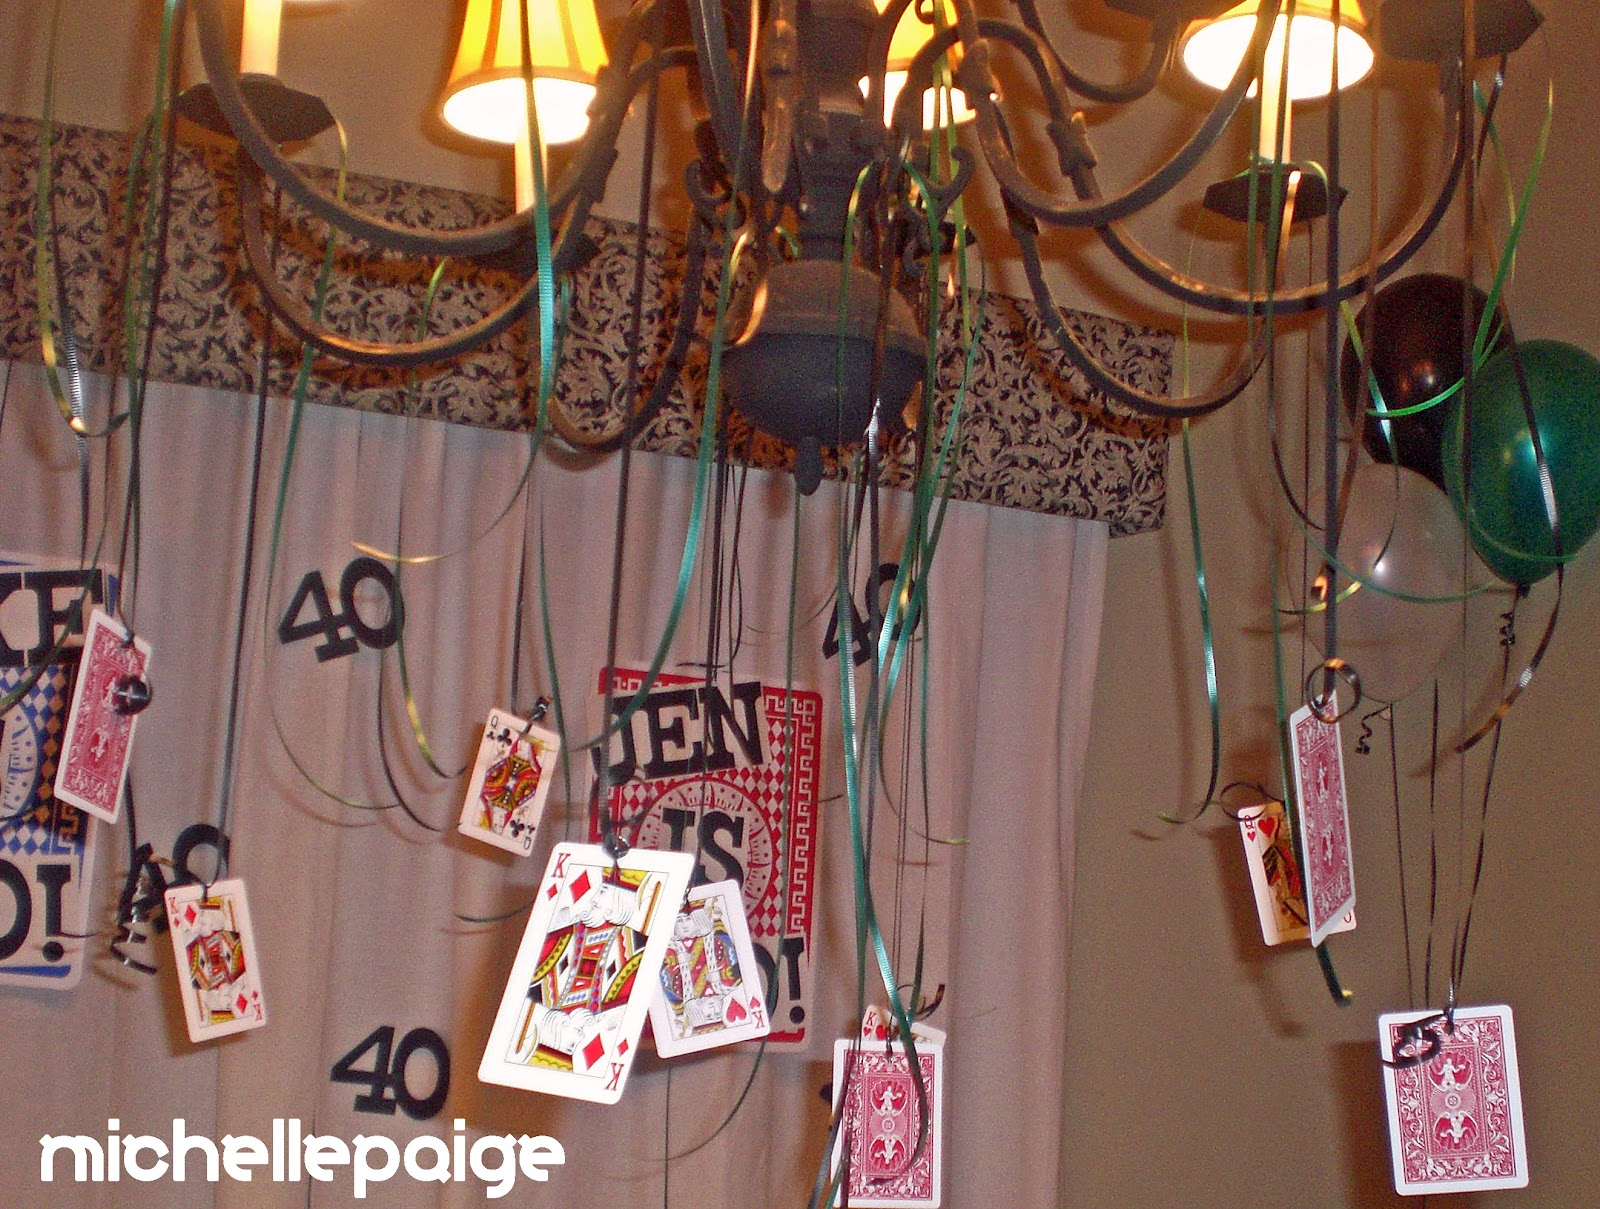 I Hung Playing Cards From The Chandelier Used An Old Deck That Didn T Mind Destroying With Holes